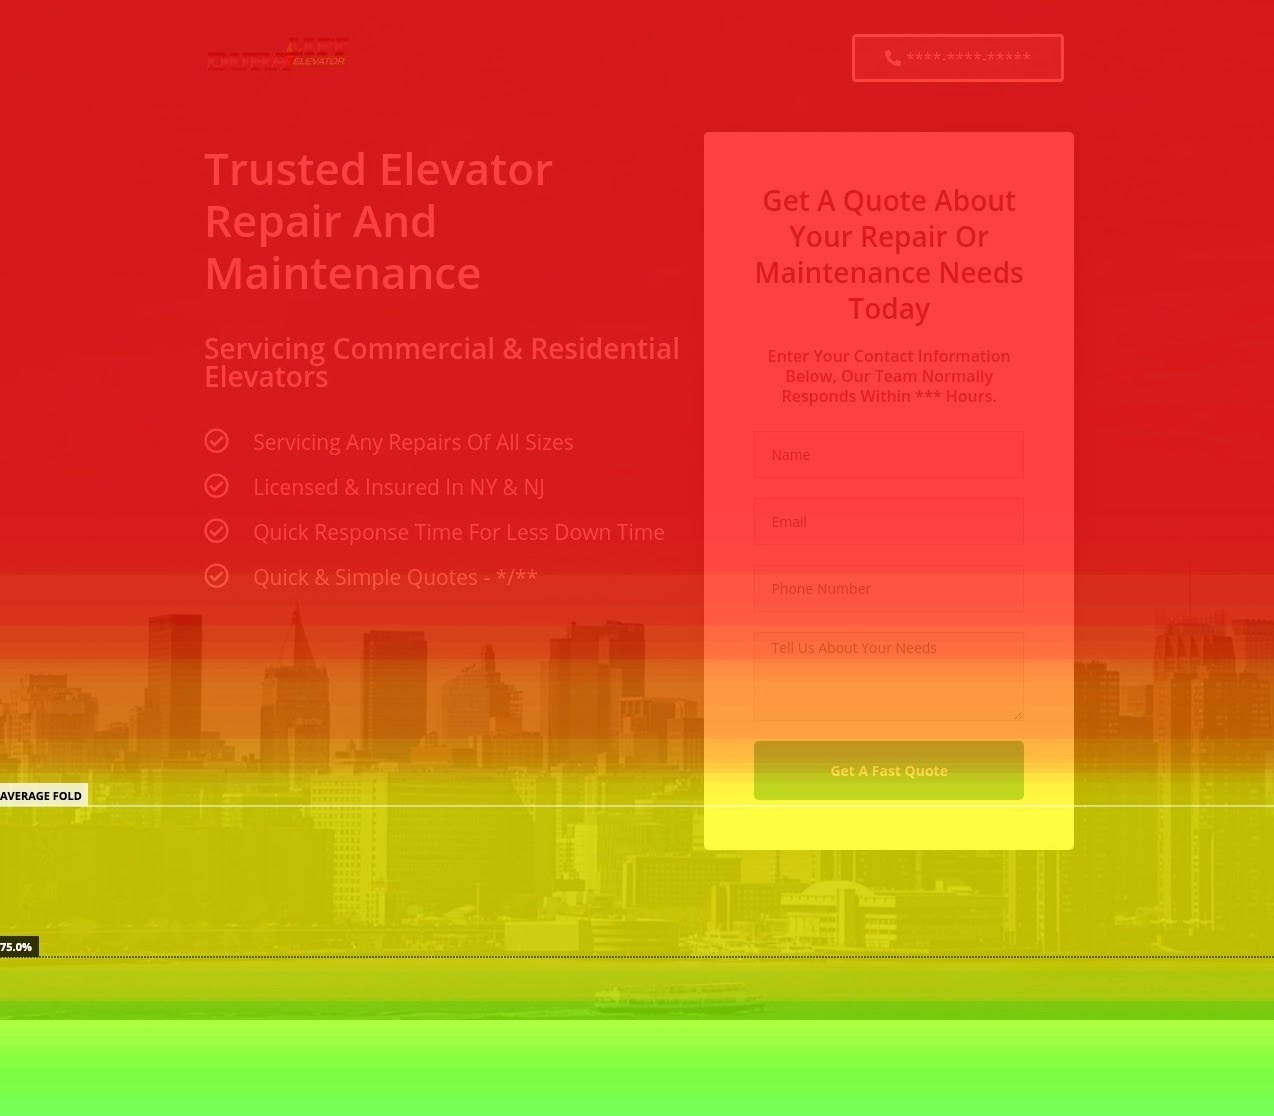 The homepage heatmap of an elevator repair company.